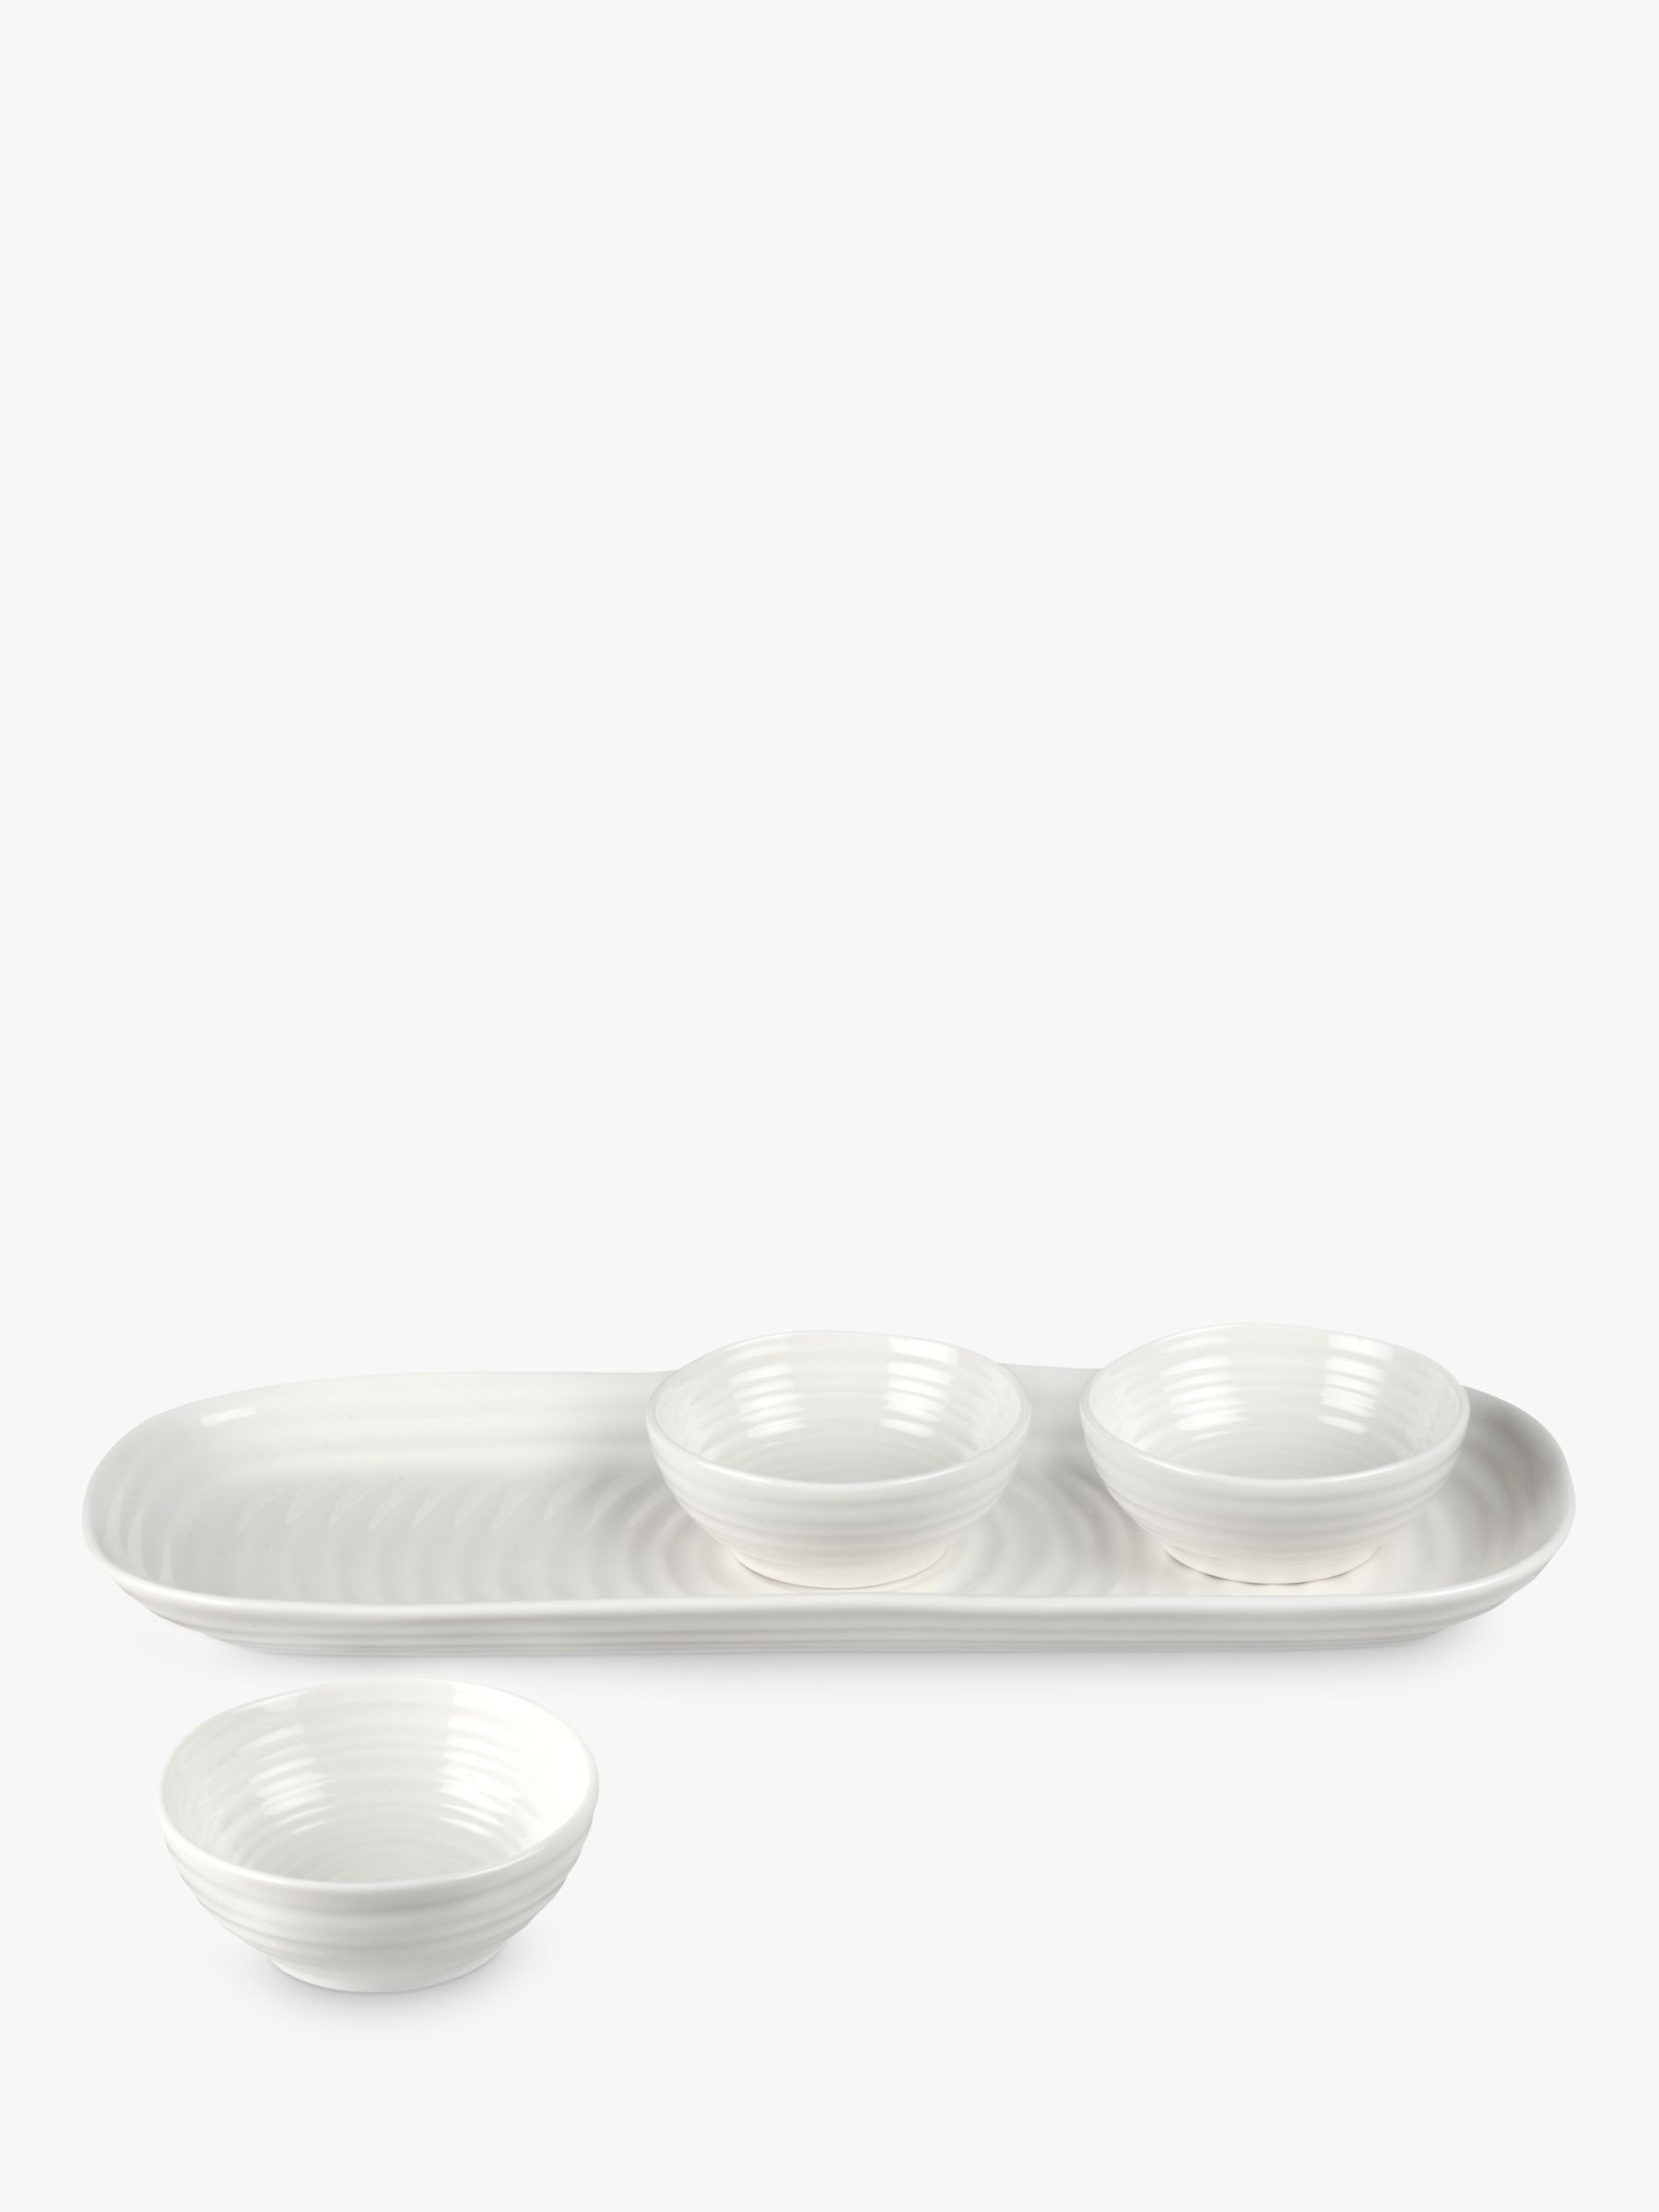 Sophie Conran for Portmeirion Sophie Conran for Portmeirion Dip Bowls On Tray, Set of 3, White